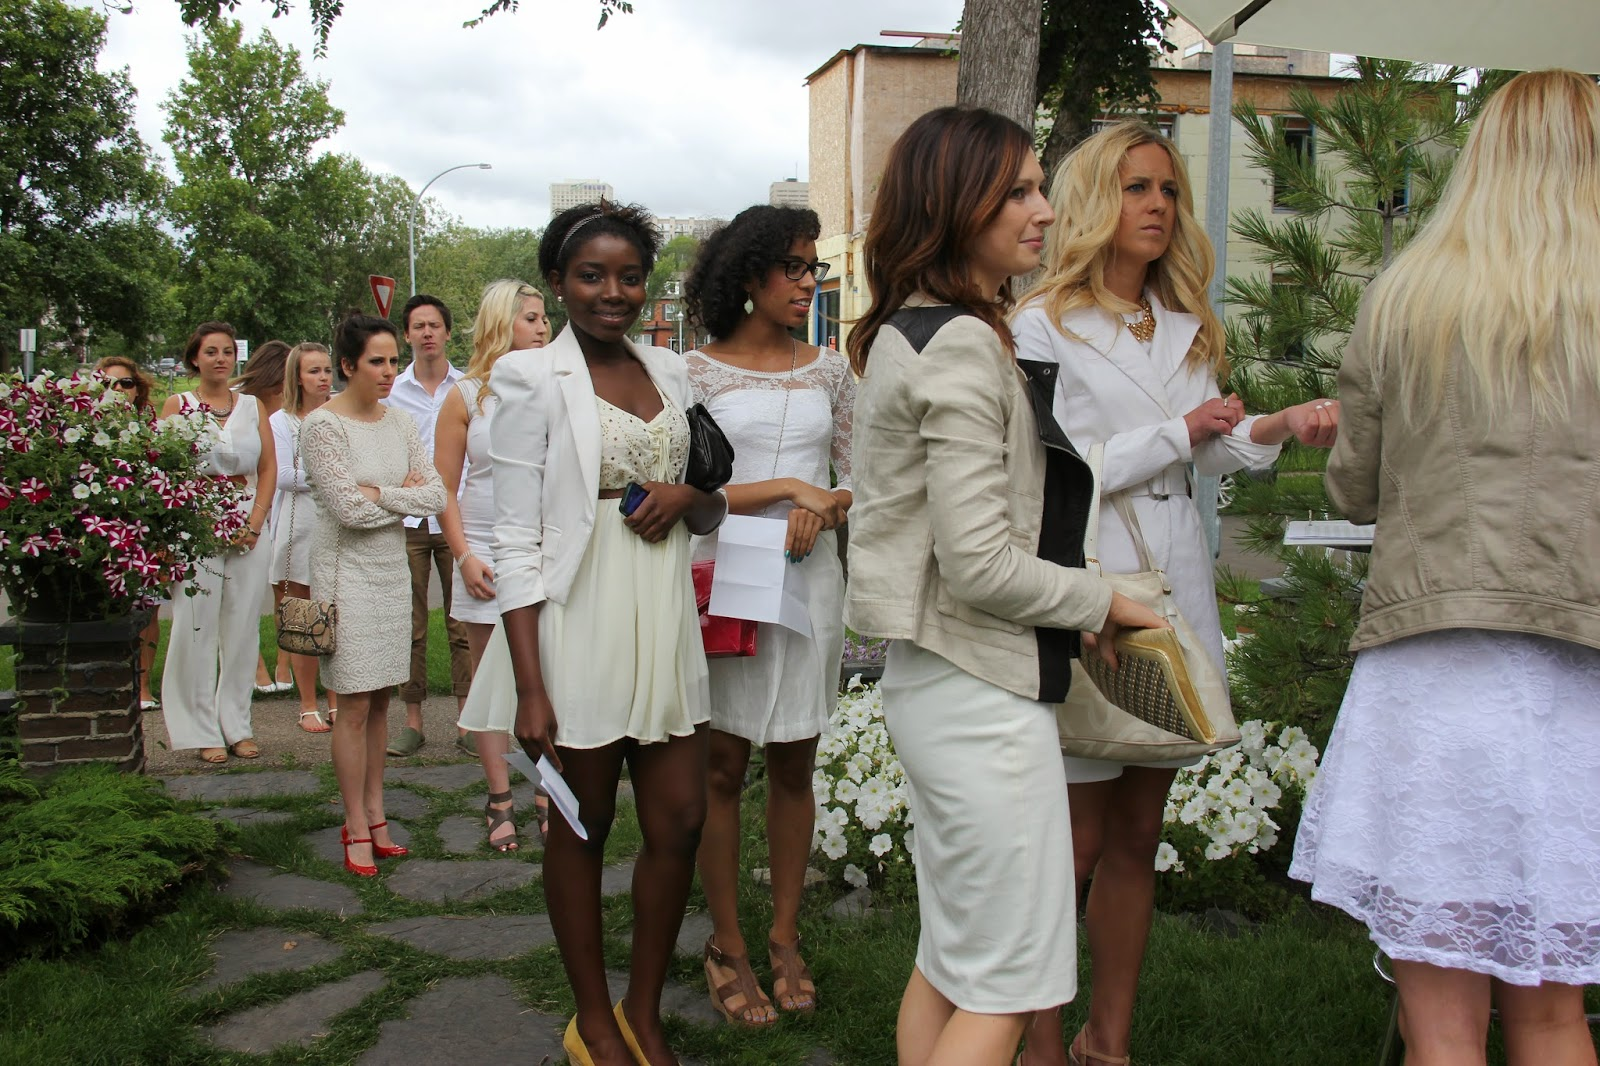 Garden Party With Live Jazz Music While Guests Sip Champagne In All White Attire Have A Look At Few Pictures Below From Last Years